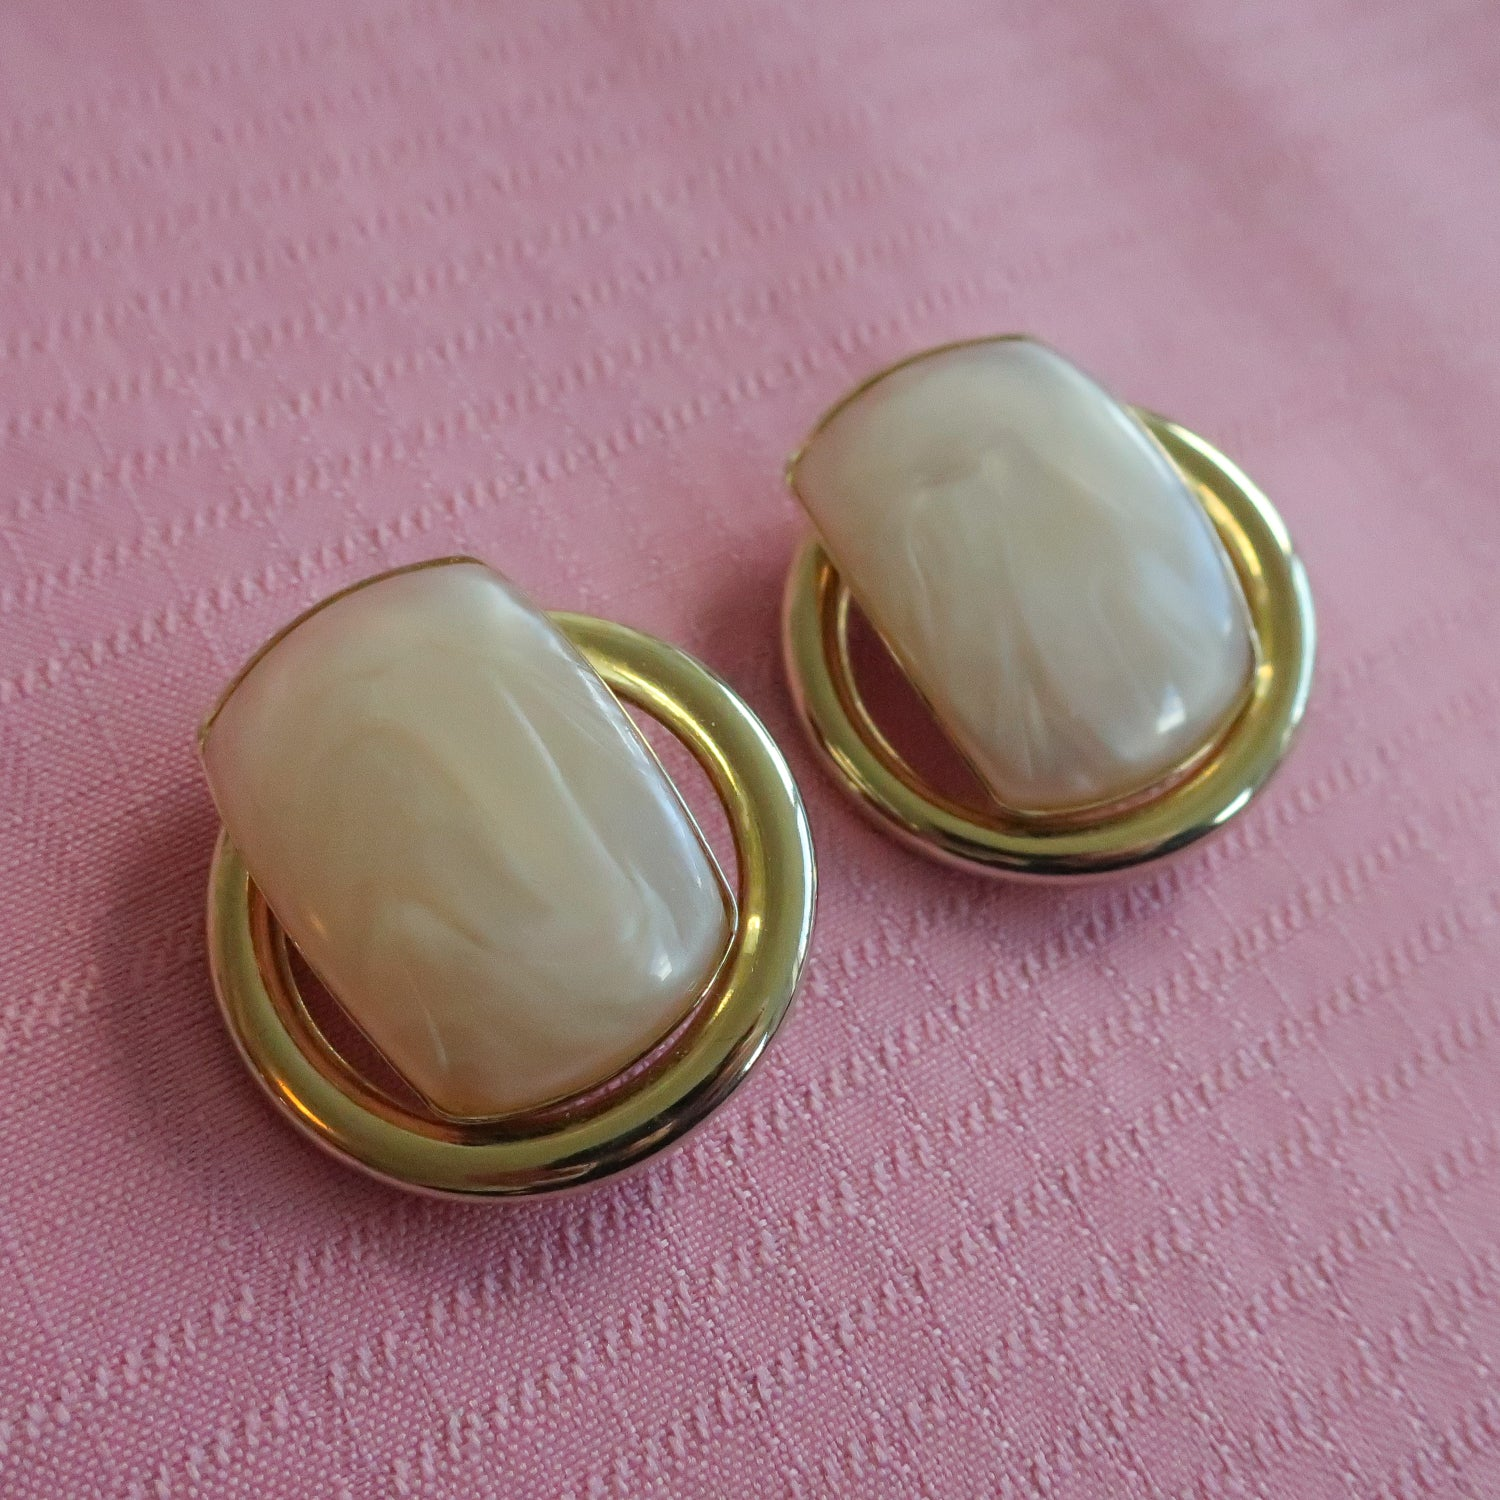 "Second Room Vintage Clothing. Vintage gold tone round clip on earrings, with faux pearl accent in the centre; 1.75"" round. Free North American shipping on all orders."